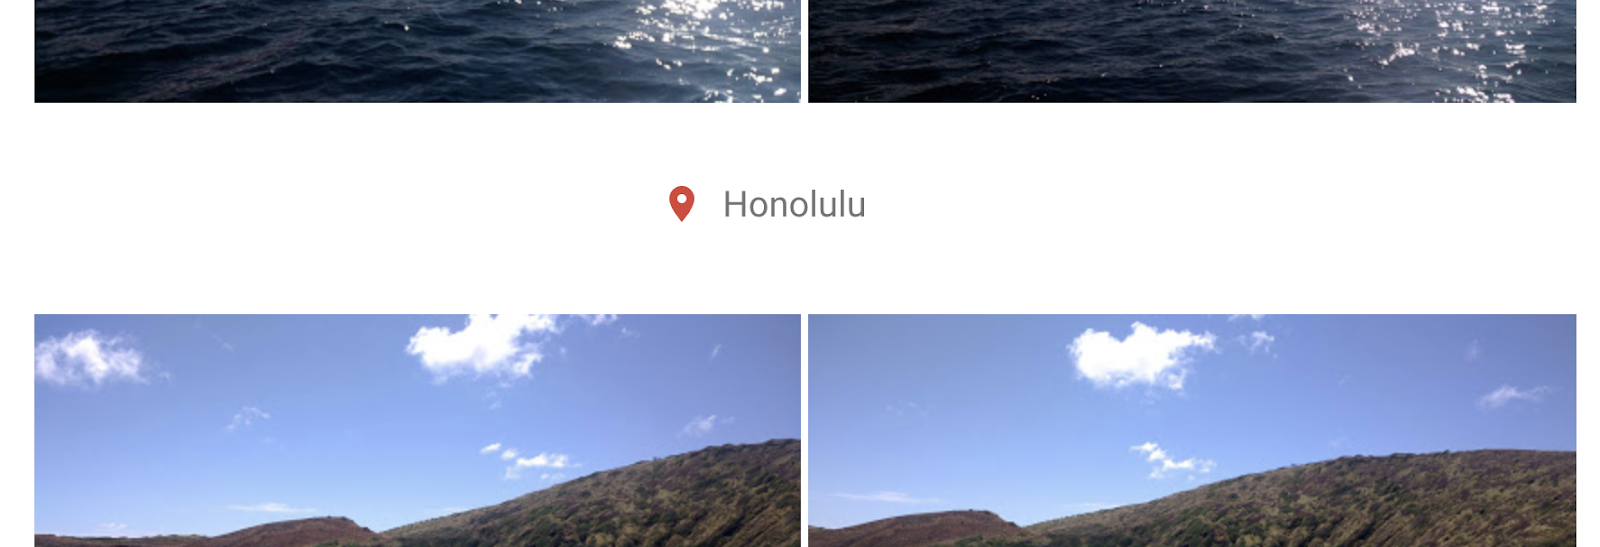 Screenshot of a location enrichment shown in Google Photos